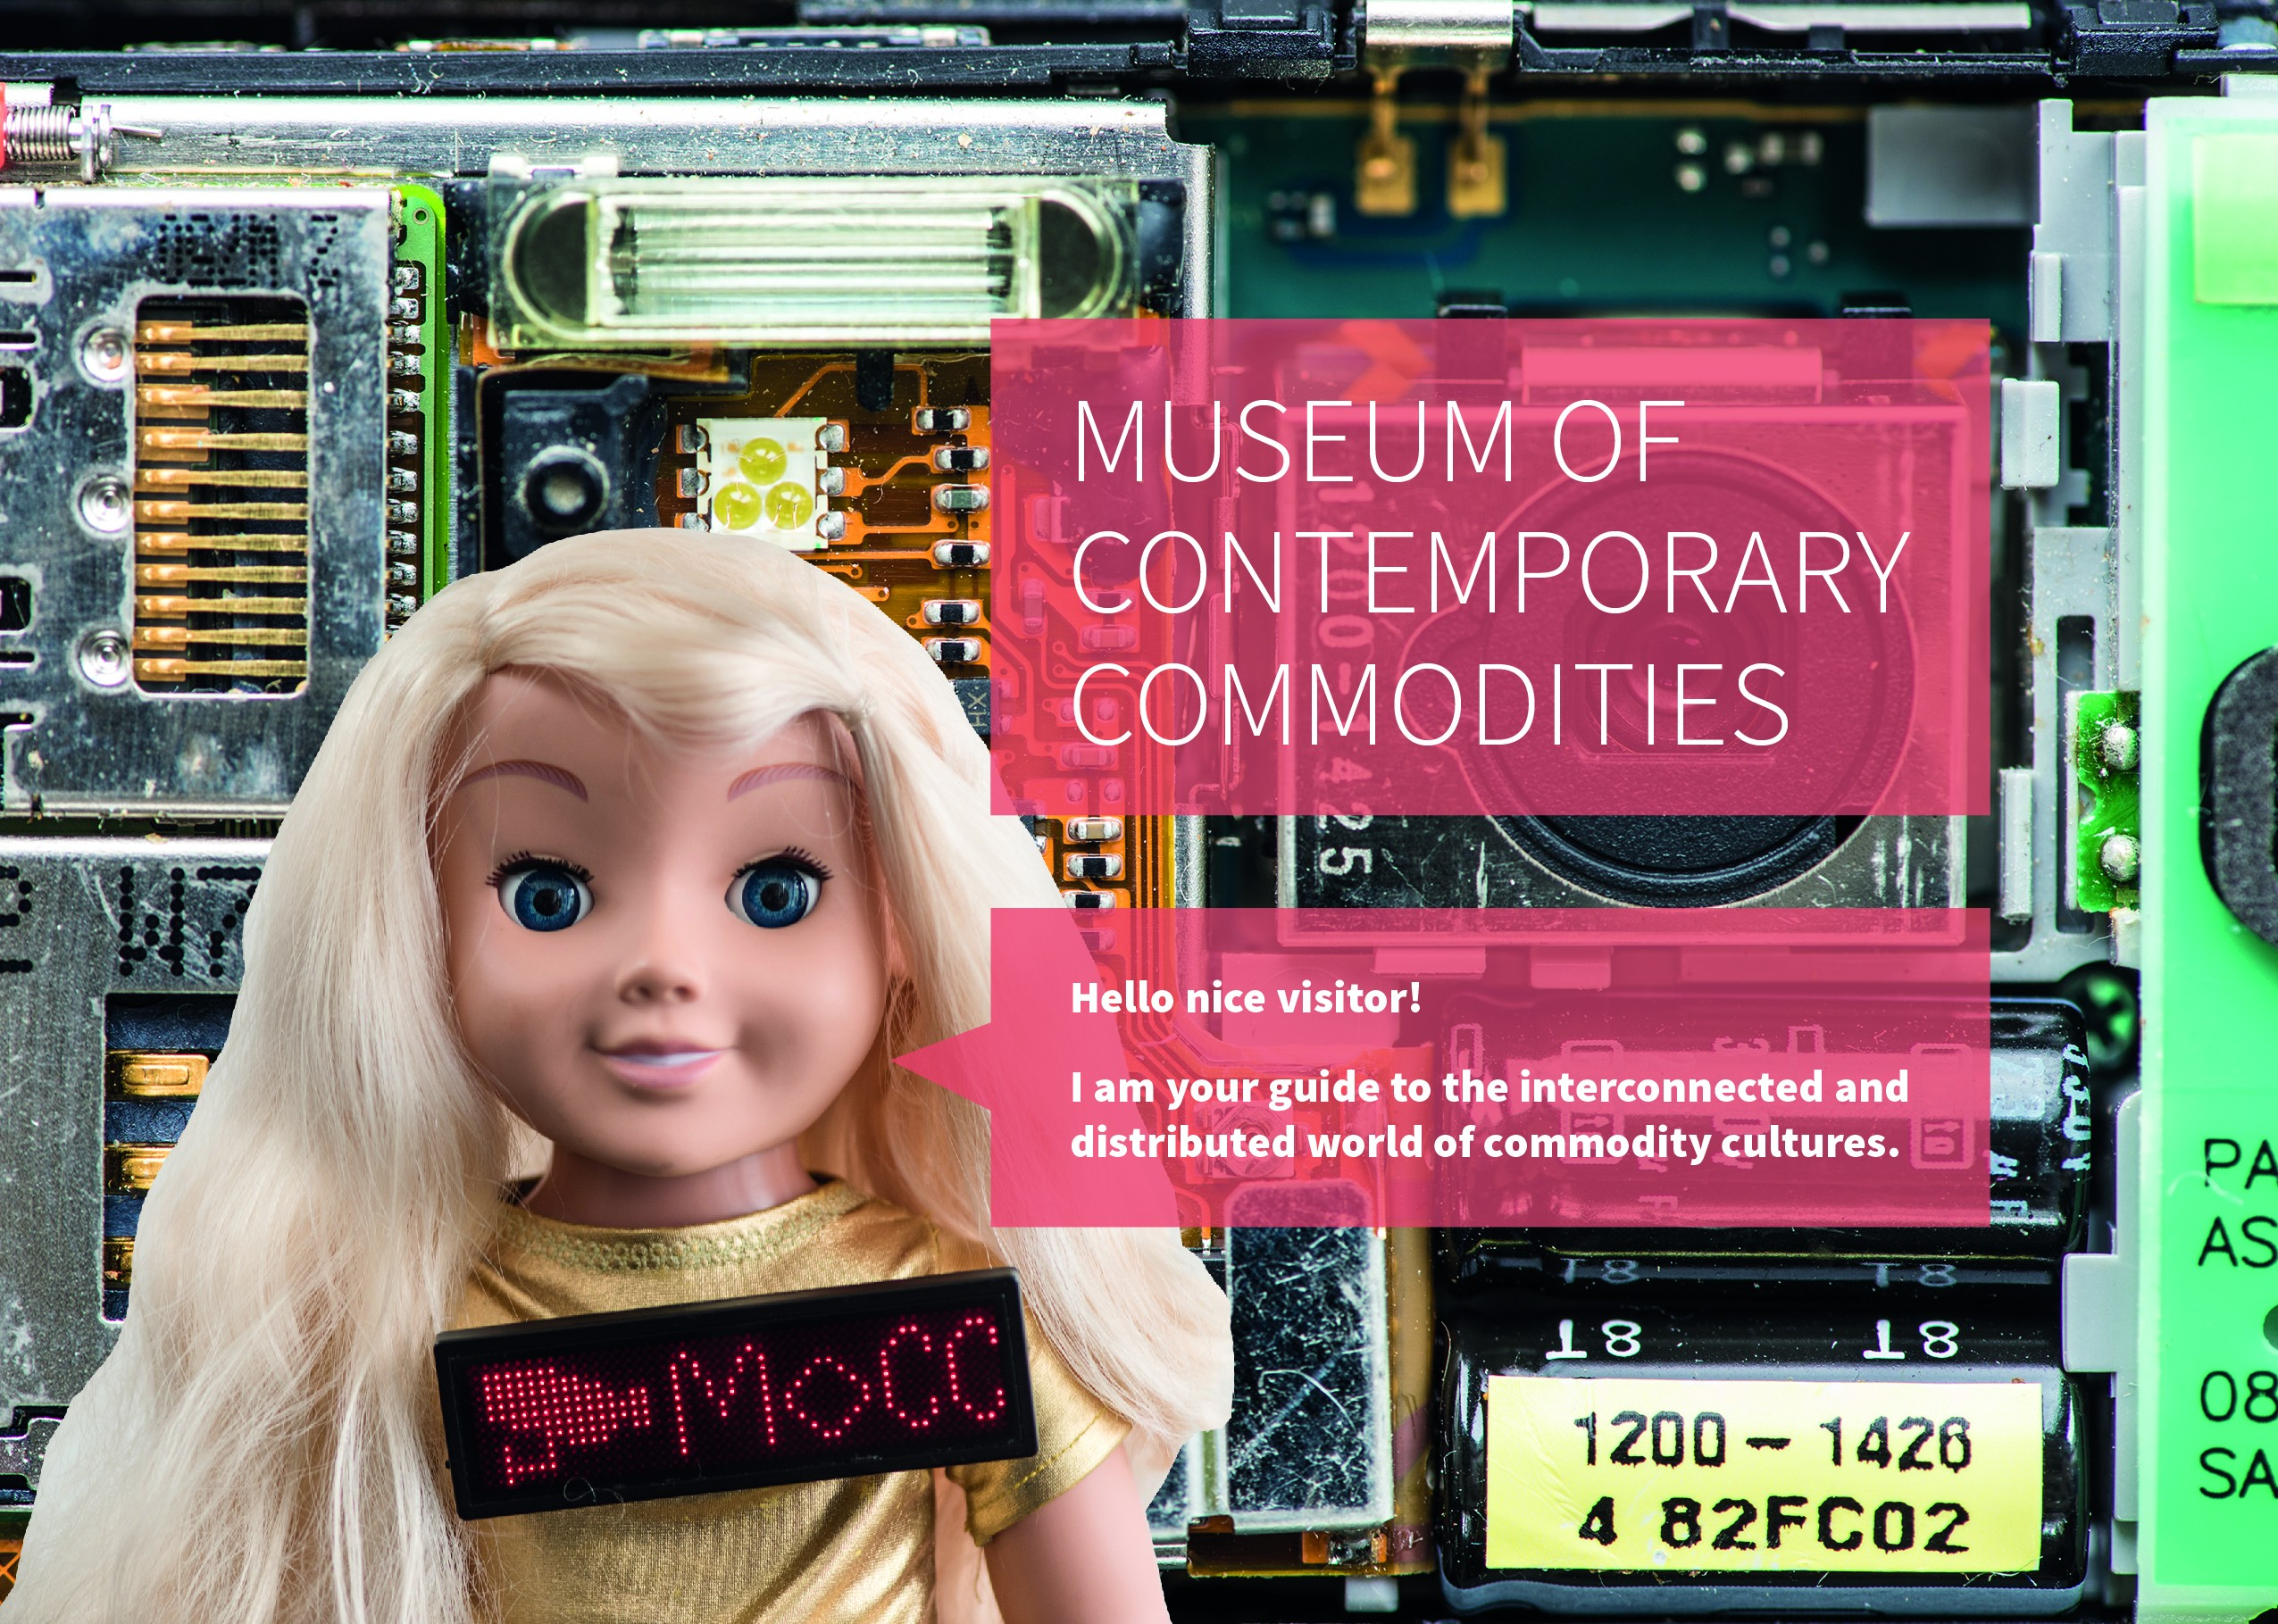 The Museum of Contemporary Commodities